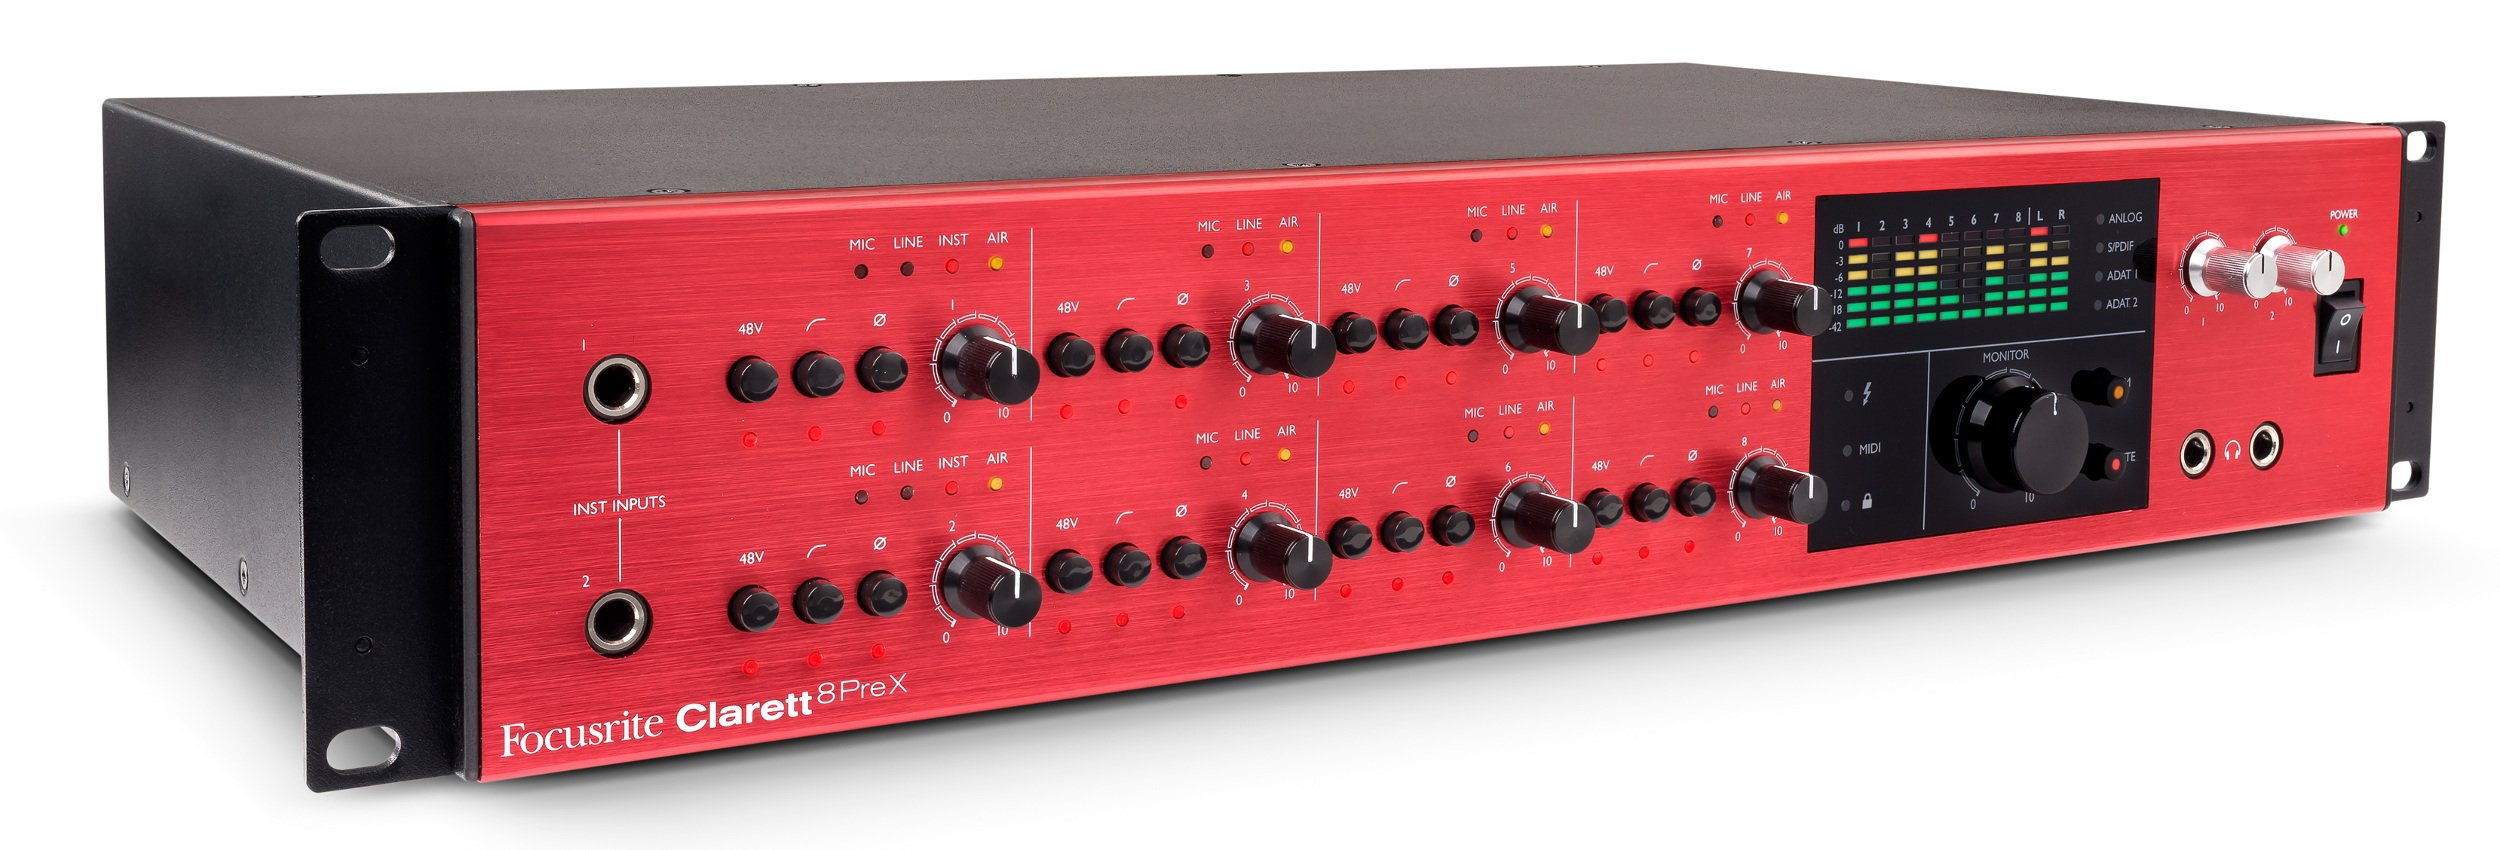 26 In / 28 Out Thunderbolt Interface with 8 Clarett Microphone Preamps and Extended I/O